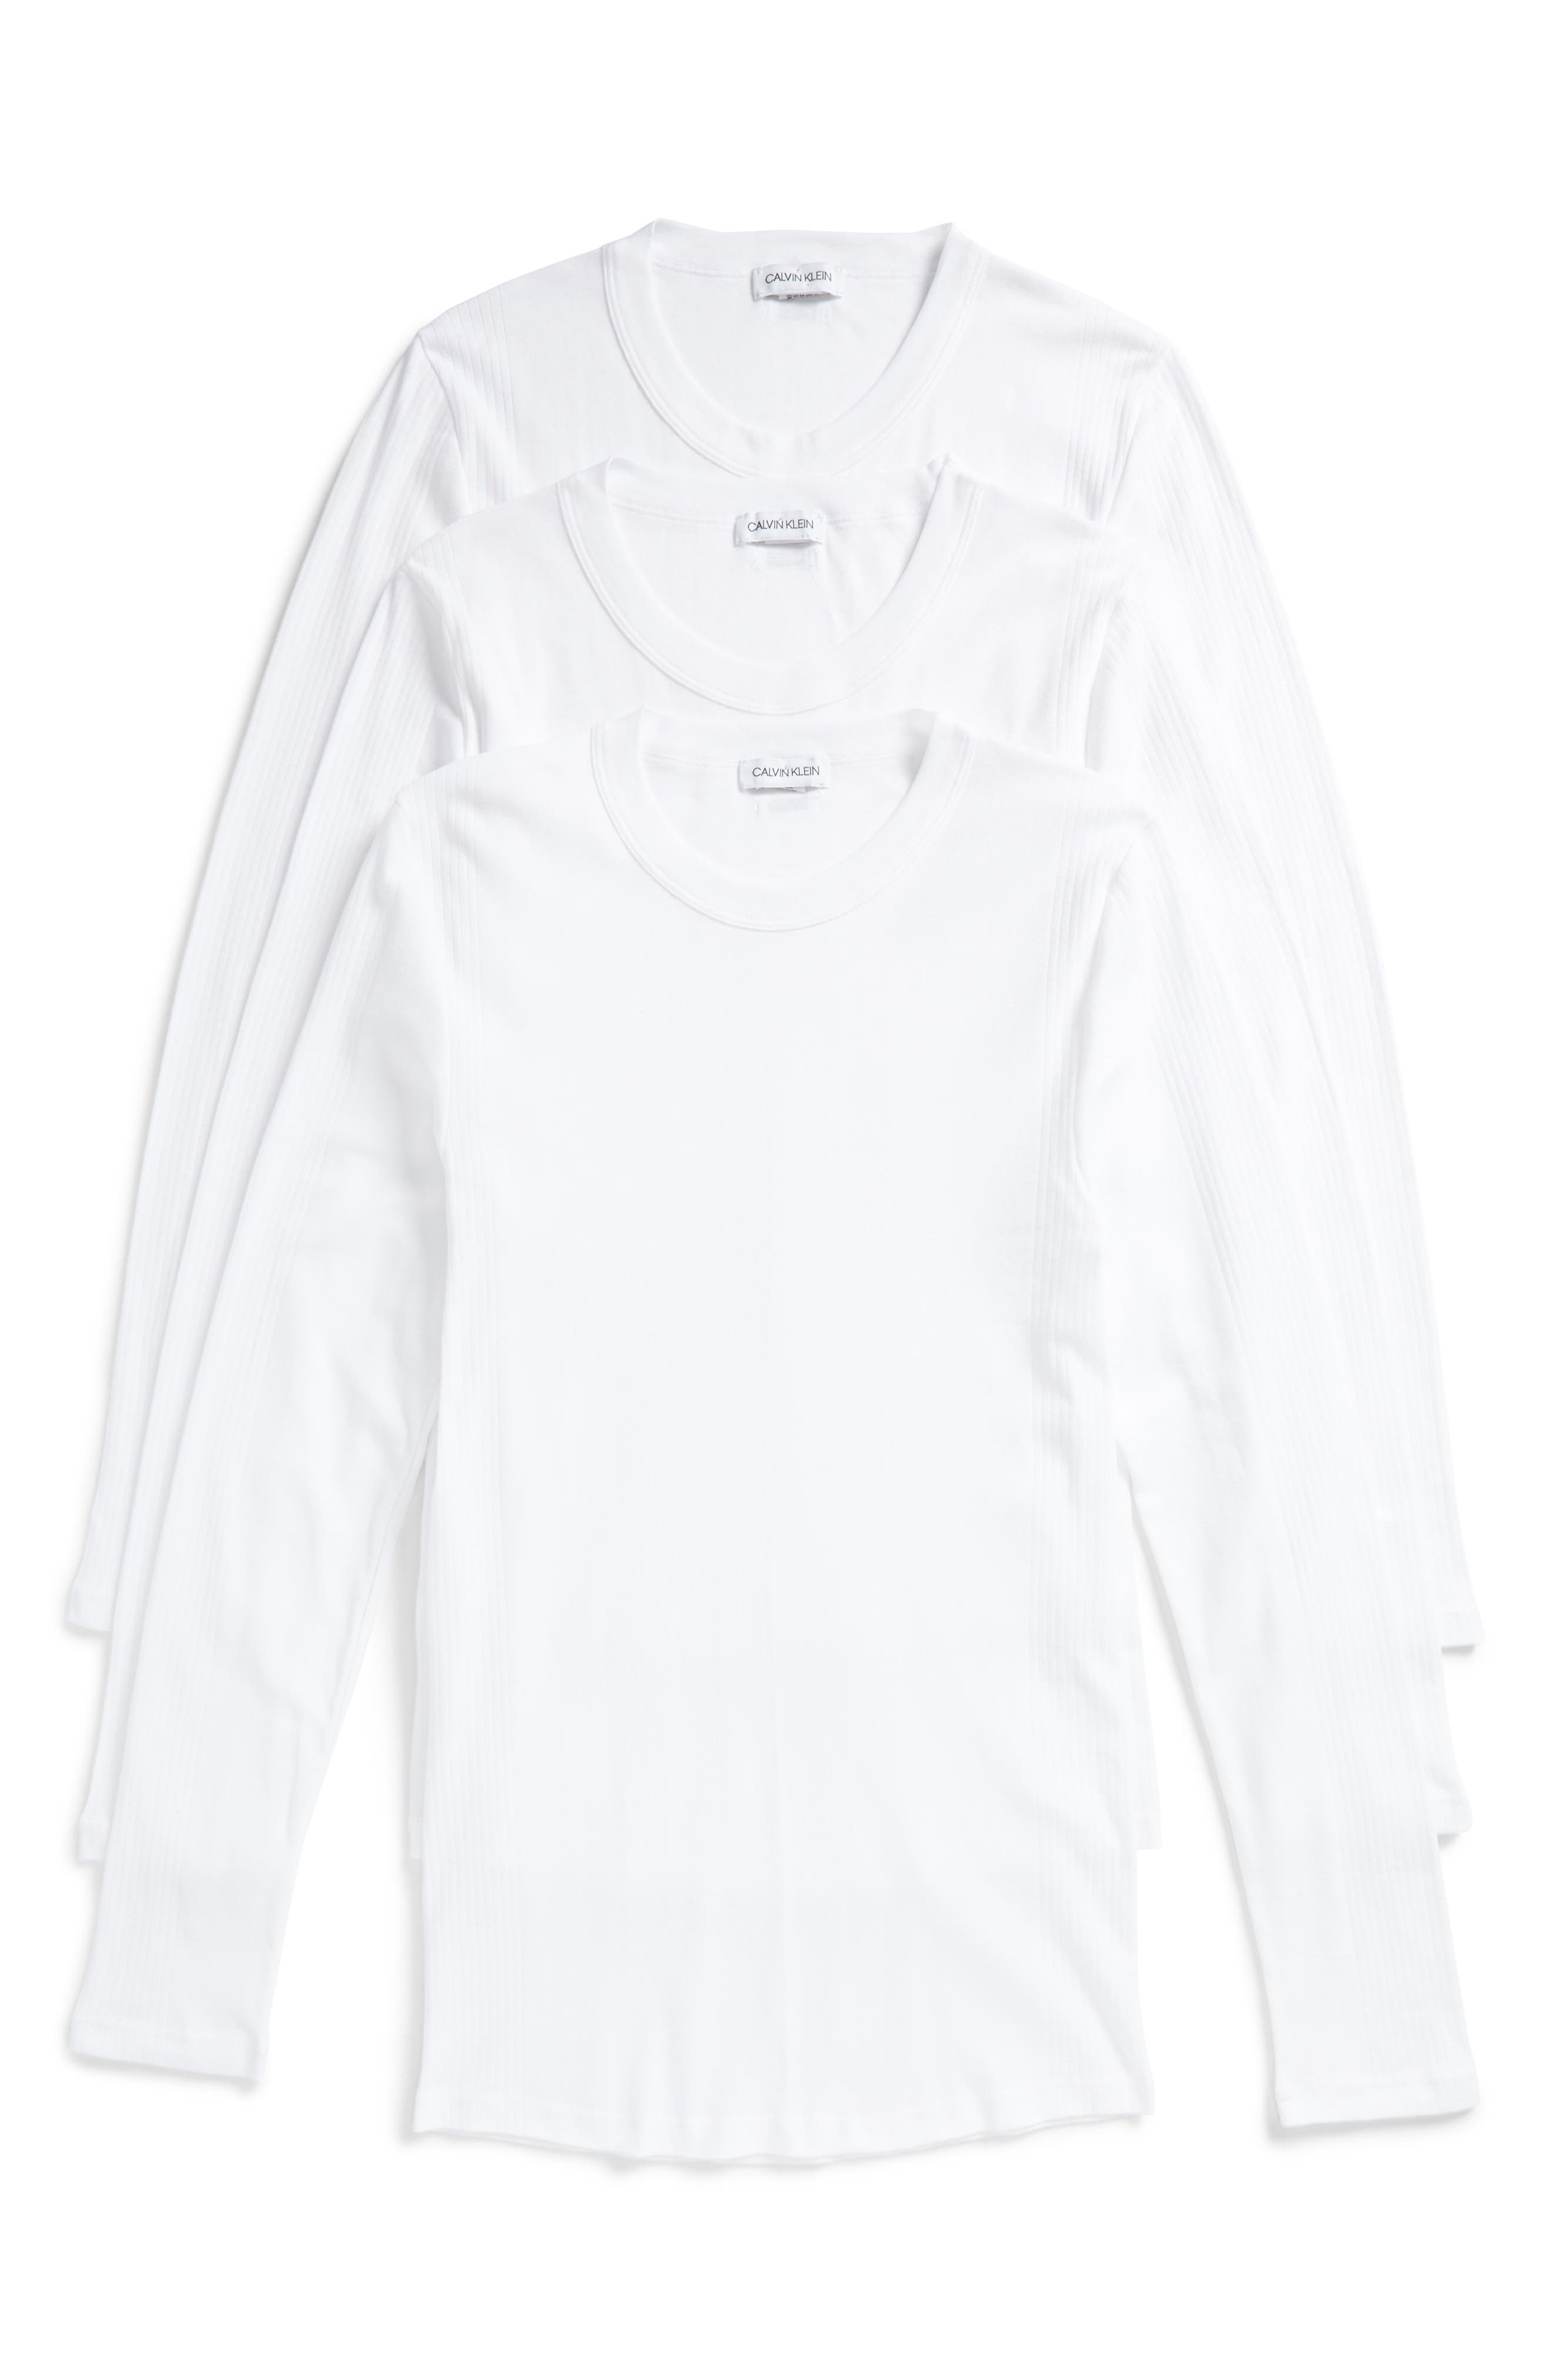 Calvin Klein 205W39NYC Concept Luxury 3-Pack Long Sleeve T-Shirt